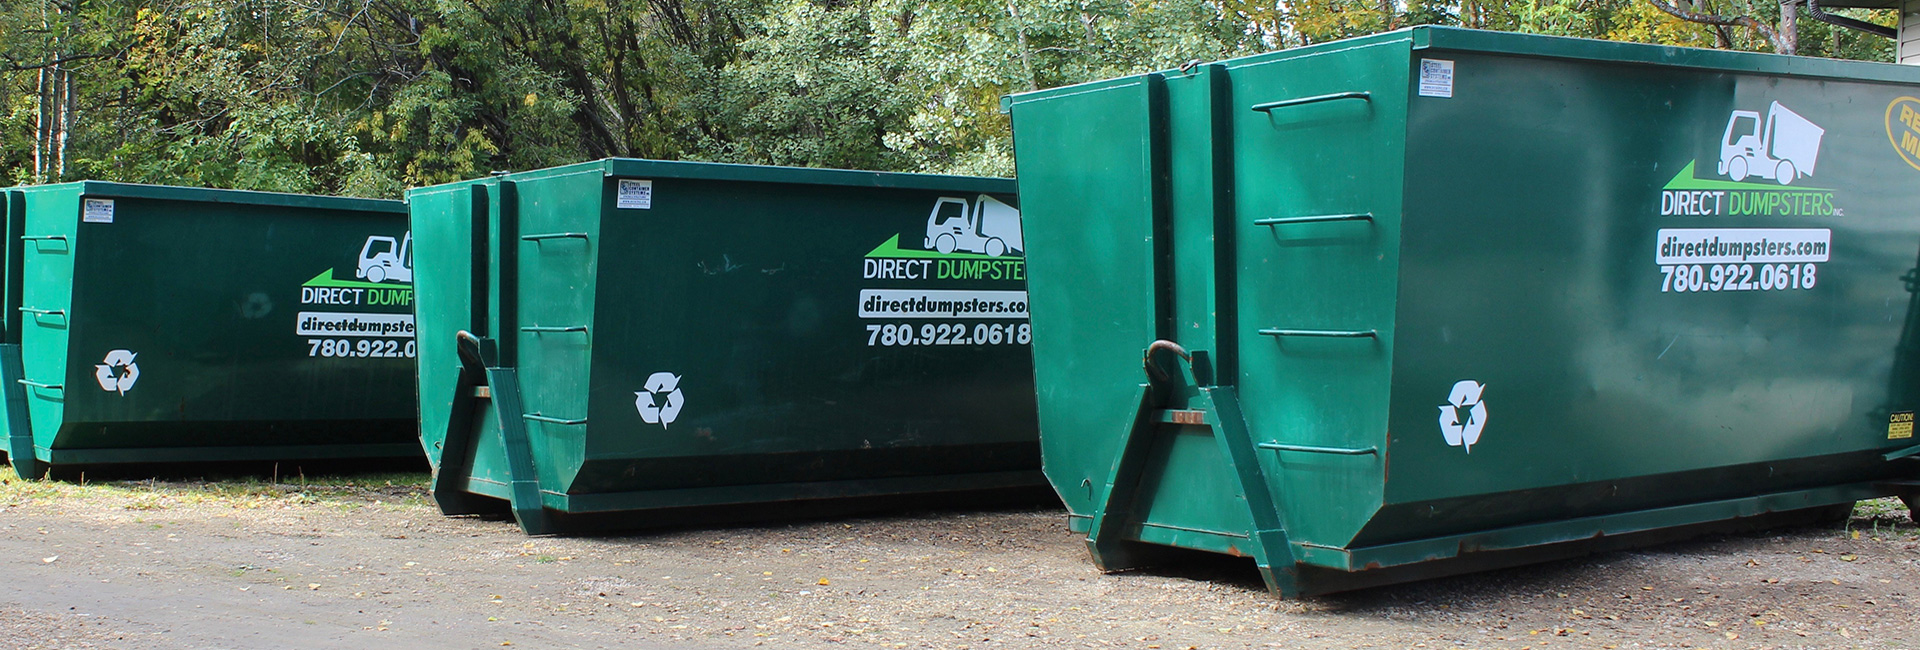 Direct Dumpsters Garbage Bin Sizes